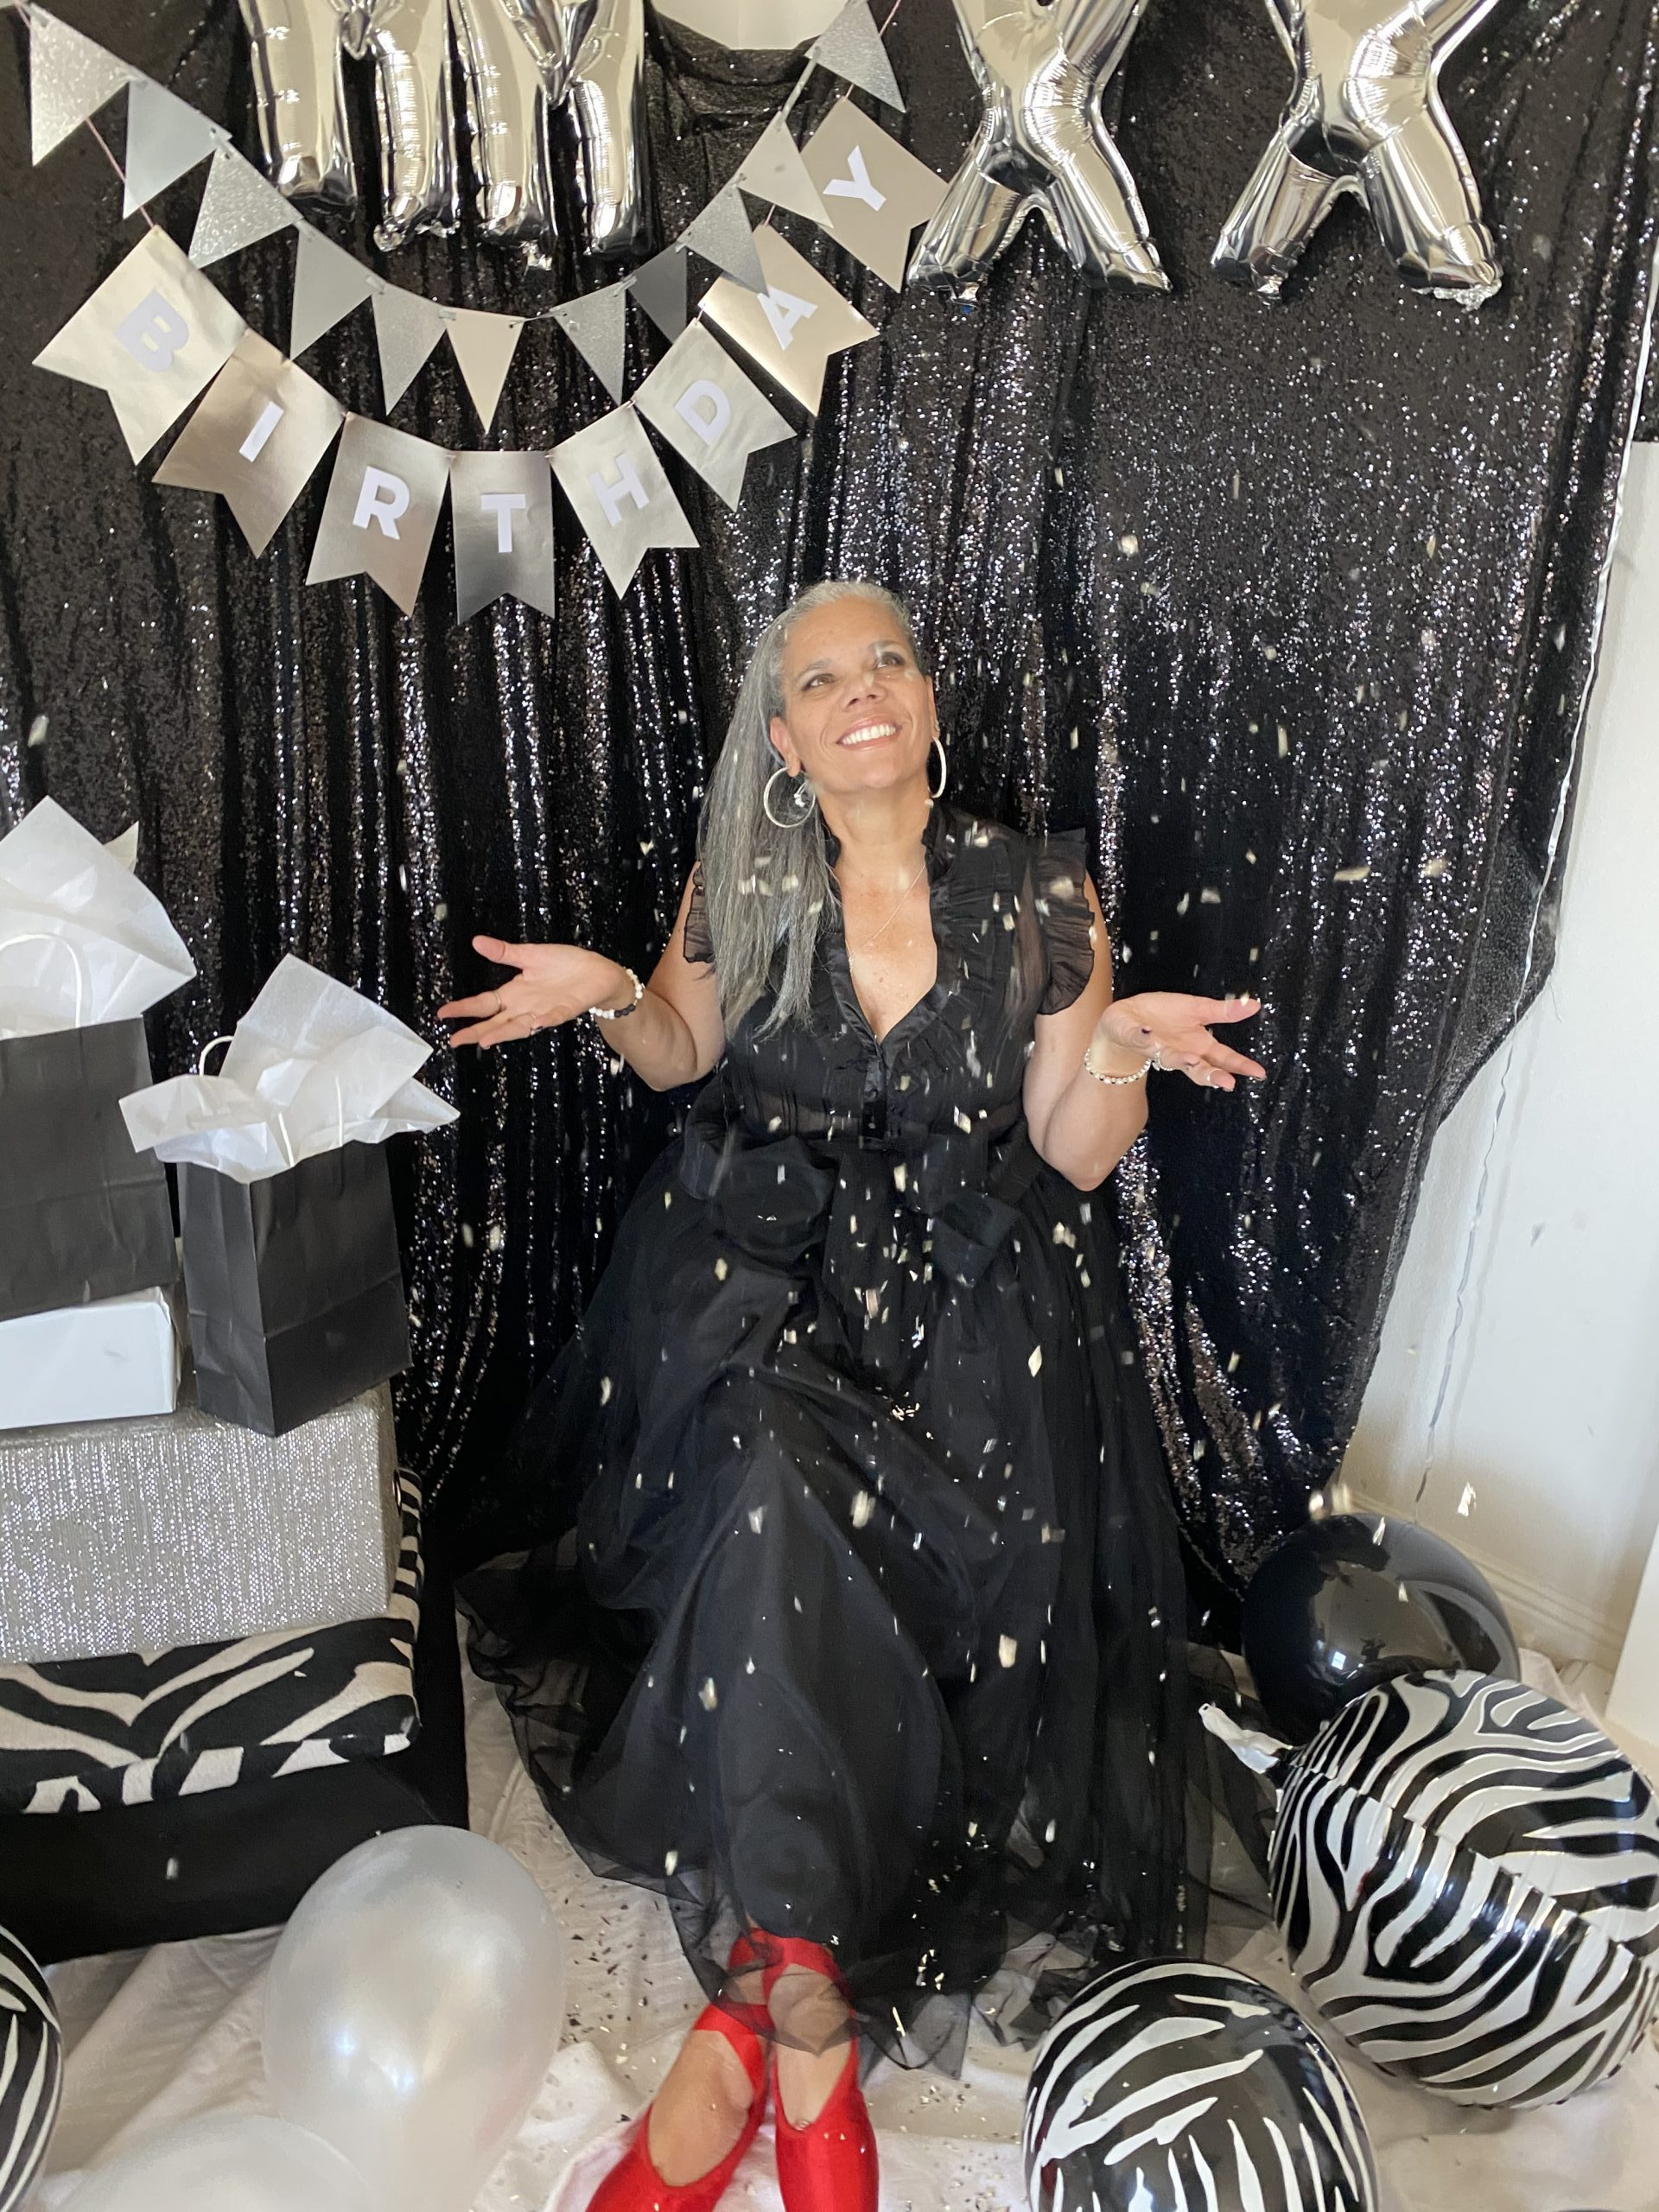 Angie wears a black dress and red shoes, and is surrounded by birthday decorations, glitter, and on the floor sits a zebra ball!